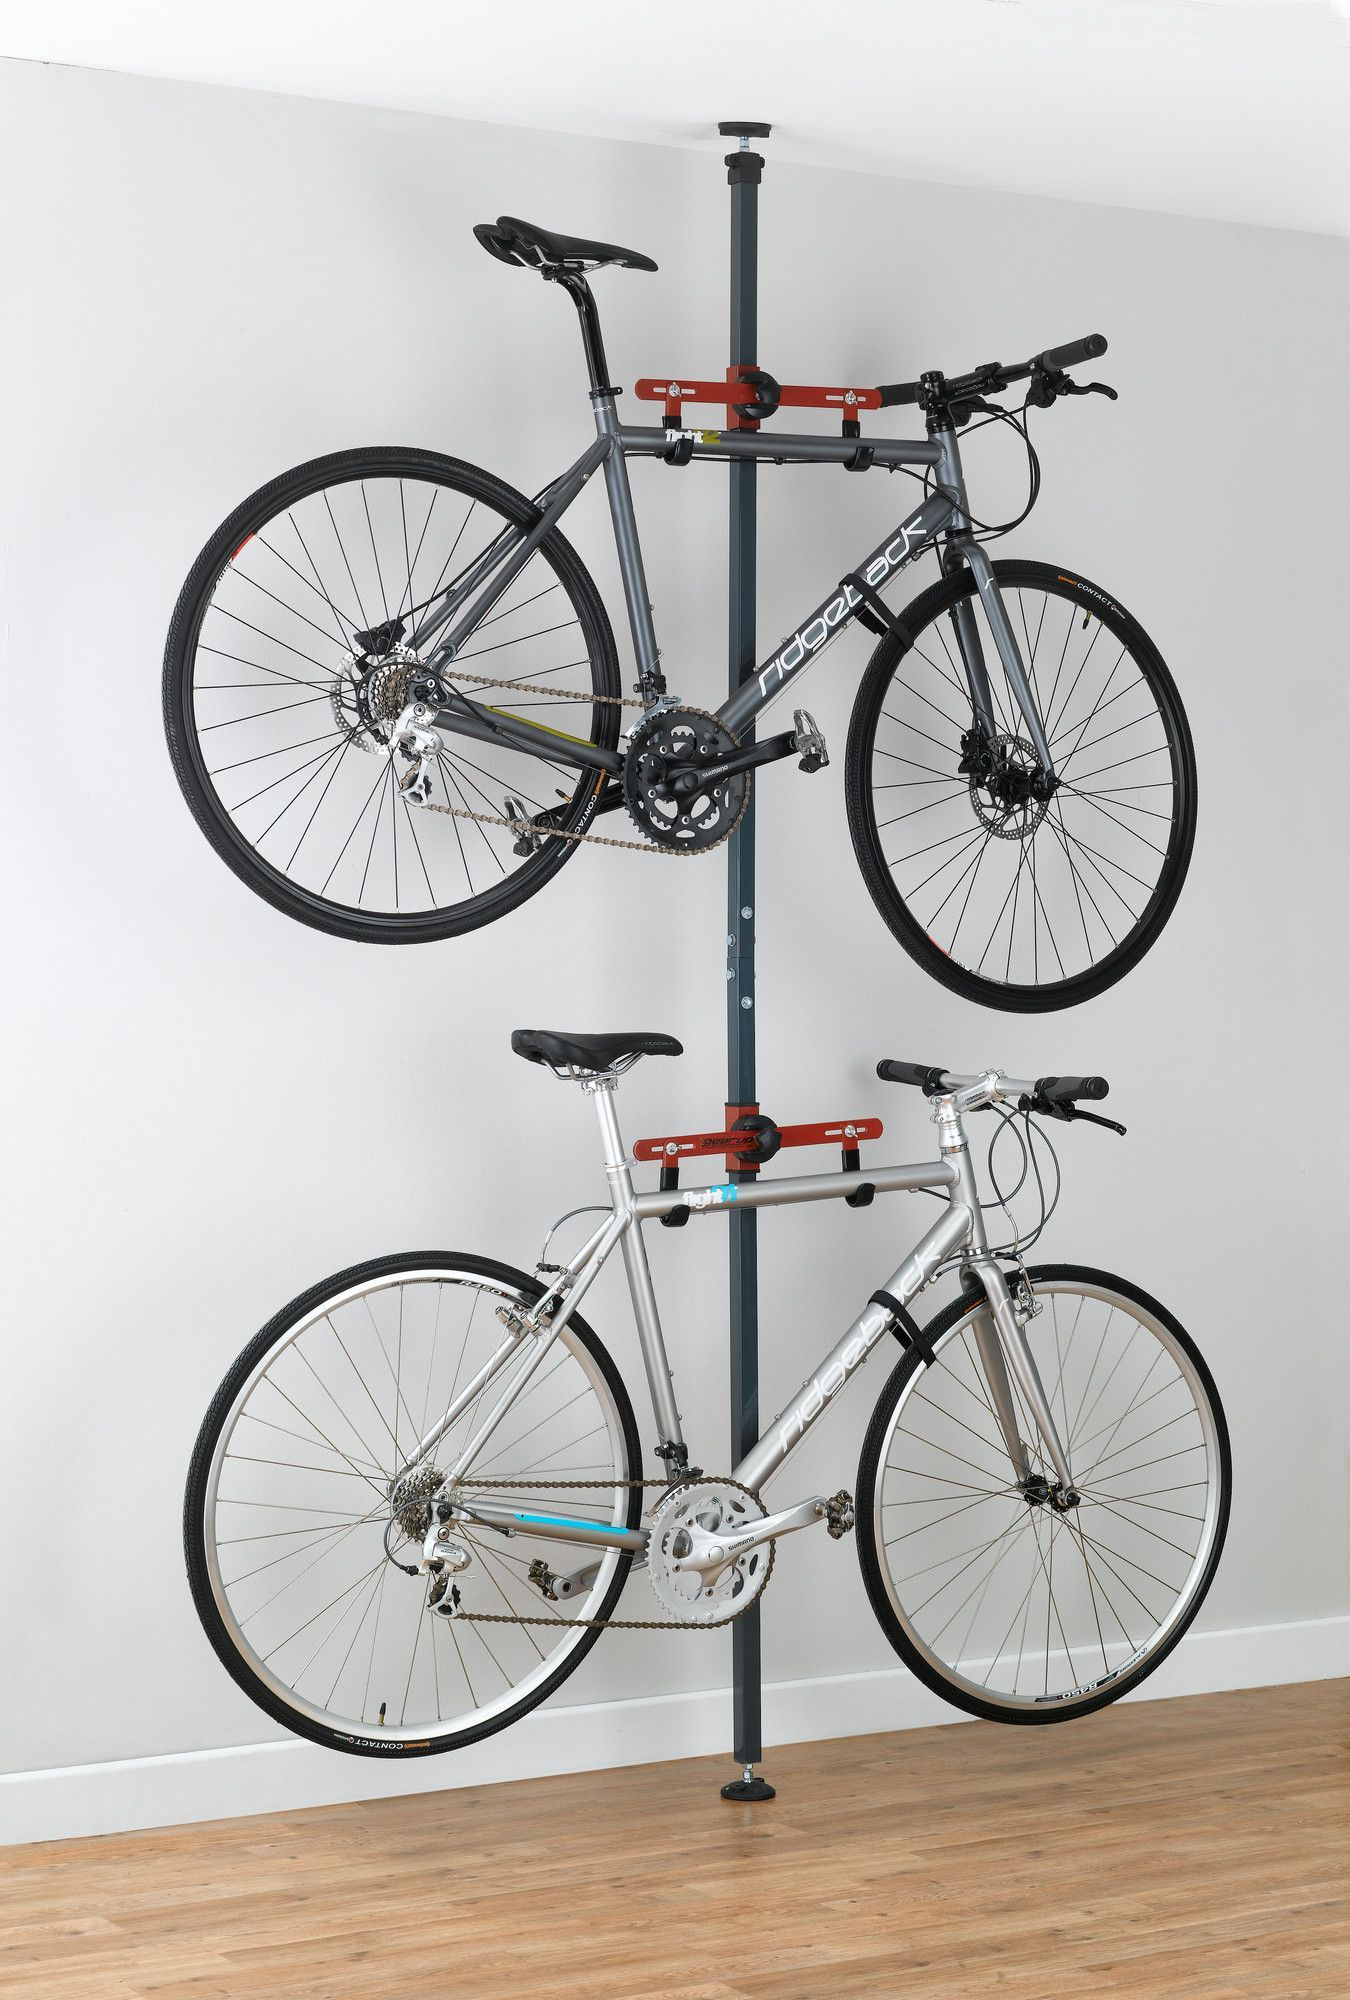 Tidy Garage Bike Rack Installation Platinum Series 2 Bike Floor To Ceiling Storage Rack Garage